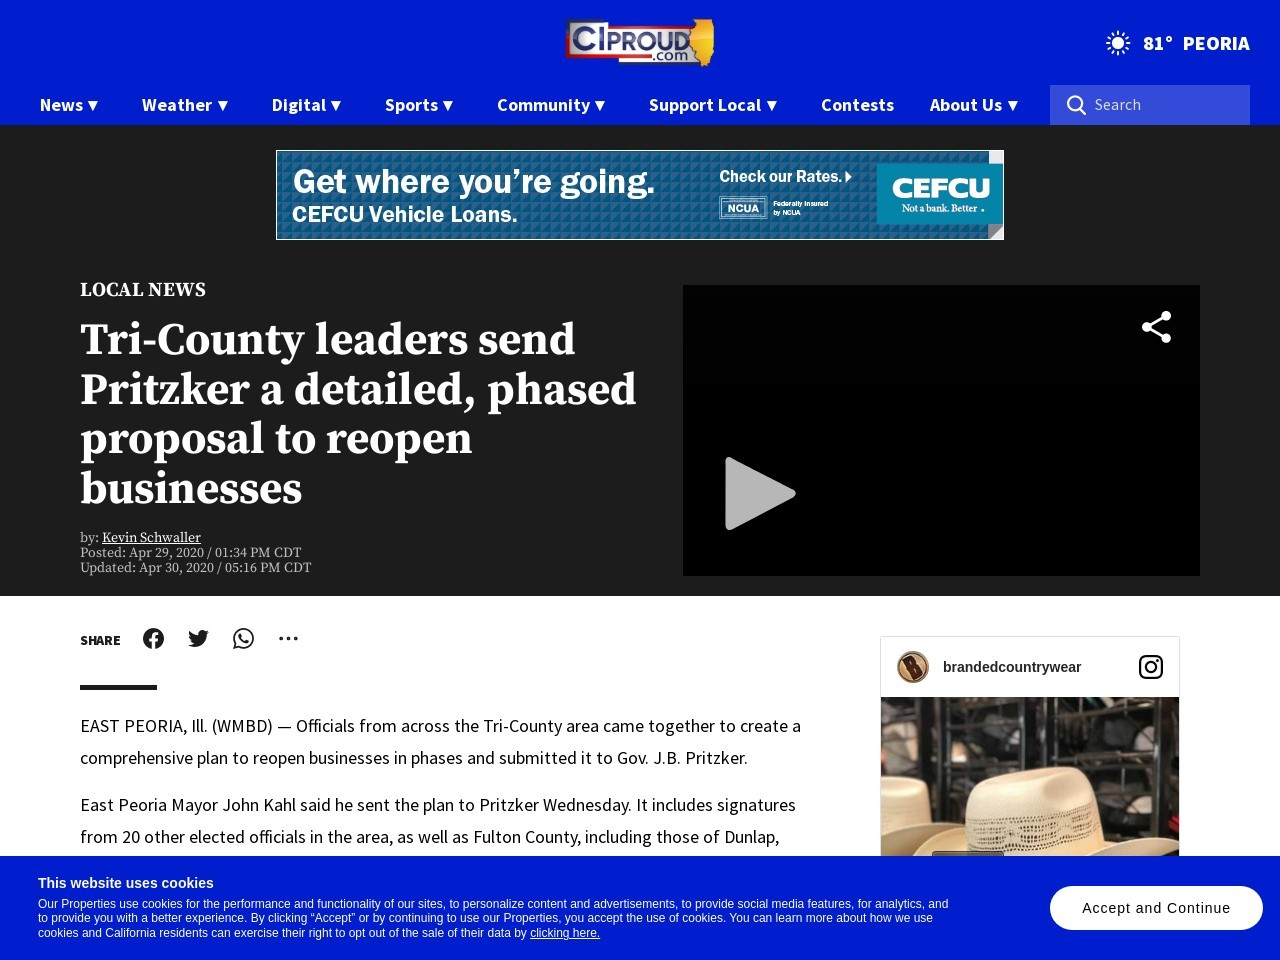 Tri-County leaders send Pritzker a detailed, phased proposal to reopen businesses